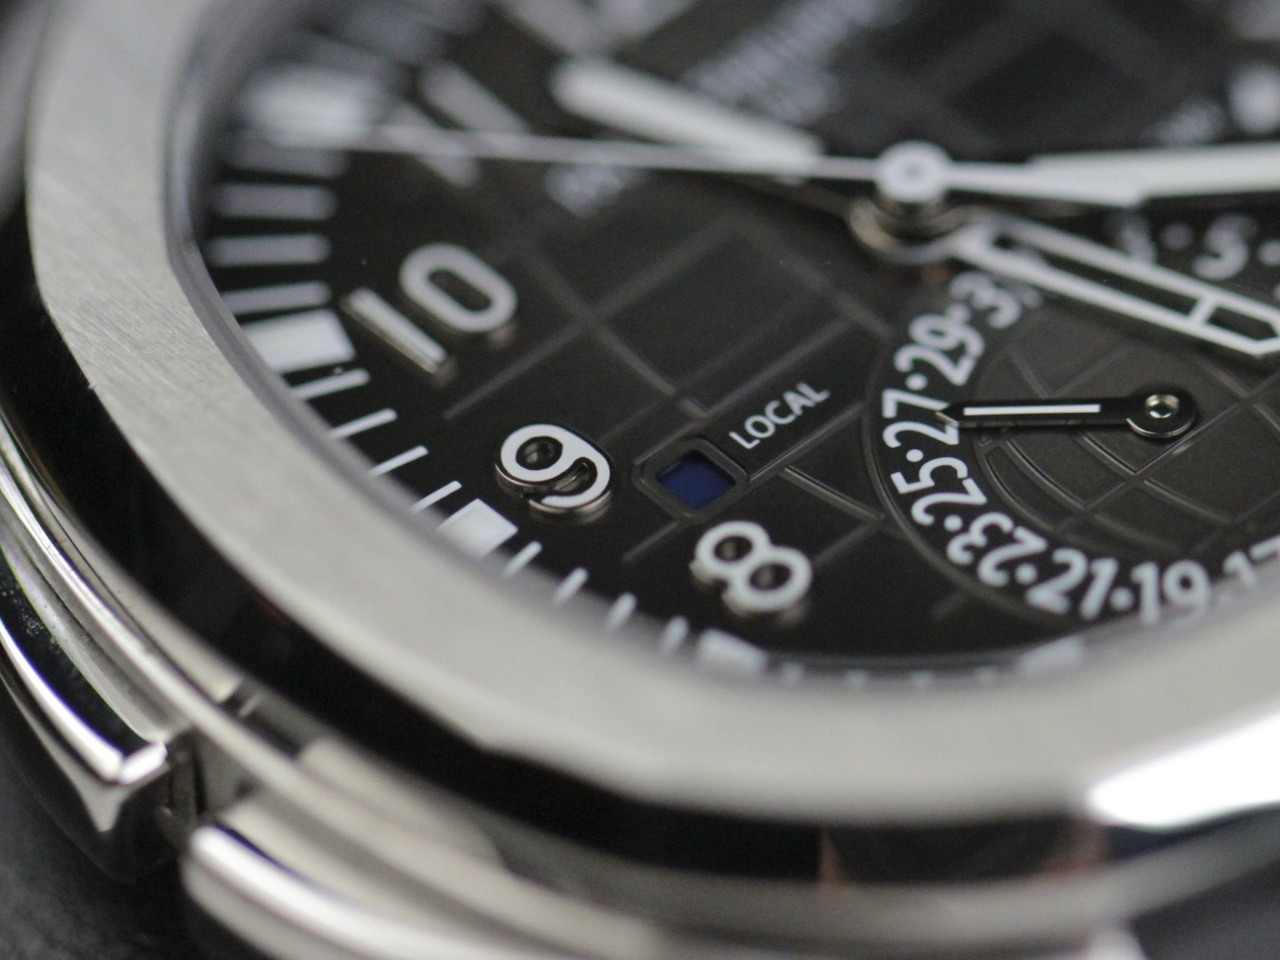 Patek_Philippe_Watch_Aquanaut_Travel_Time_Stainless_Steel_5164A_001_41mm_Sale_4__41098.1407431839.1280.1280